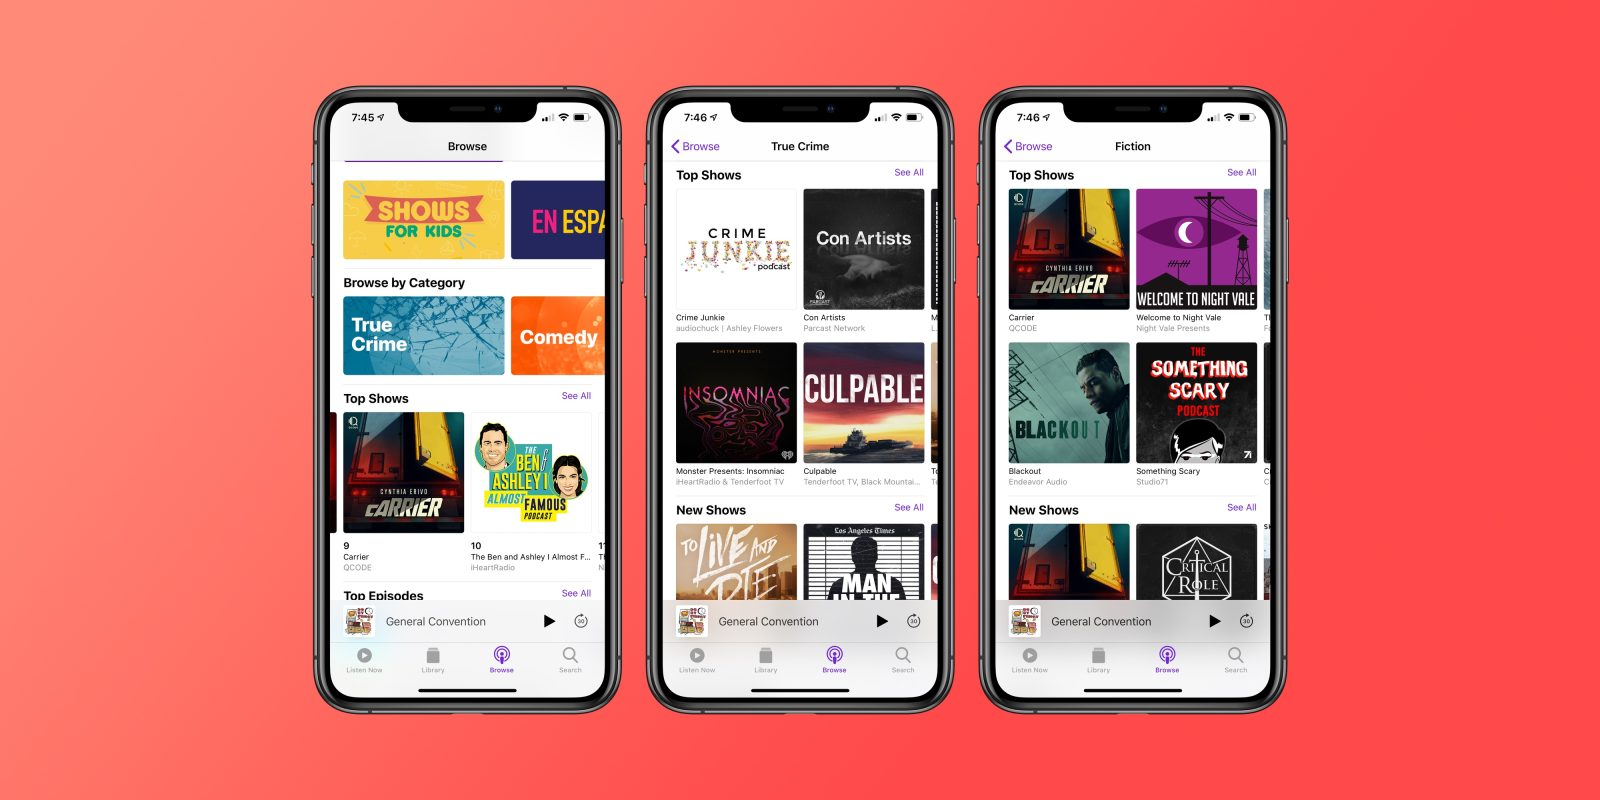 Apple Podcasts adds new top-level categories with charts, curation, and more